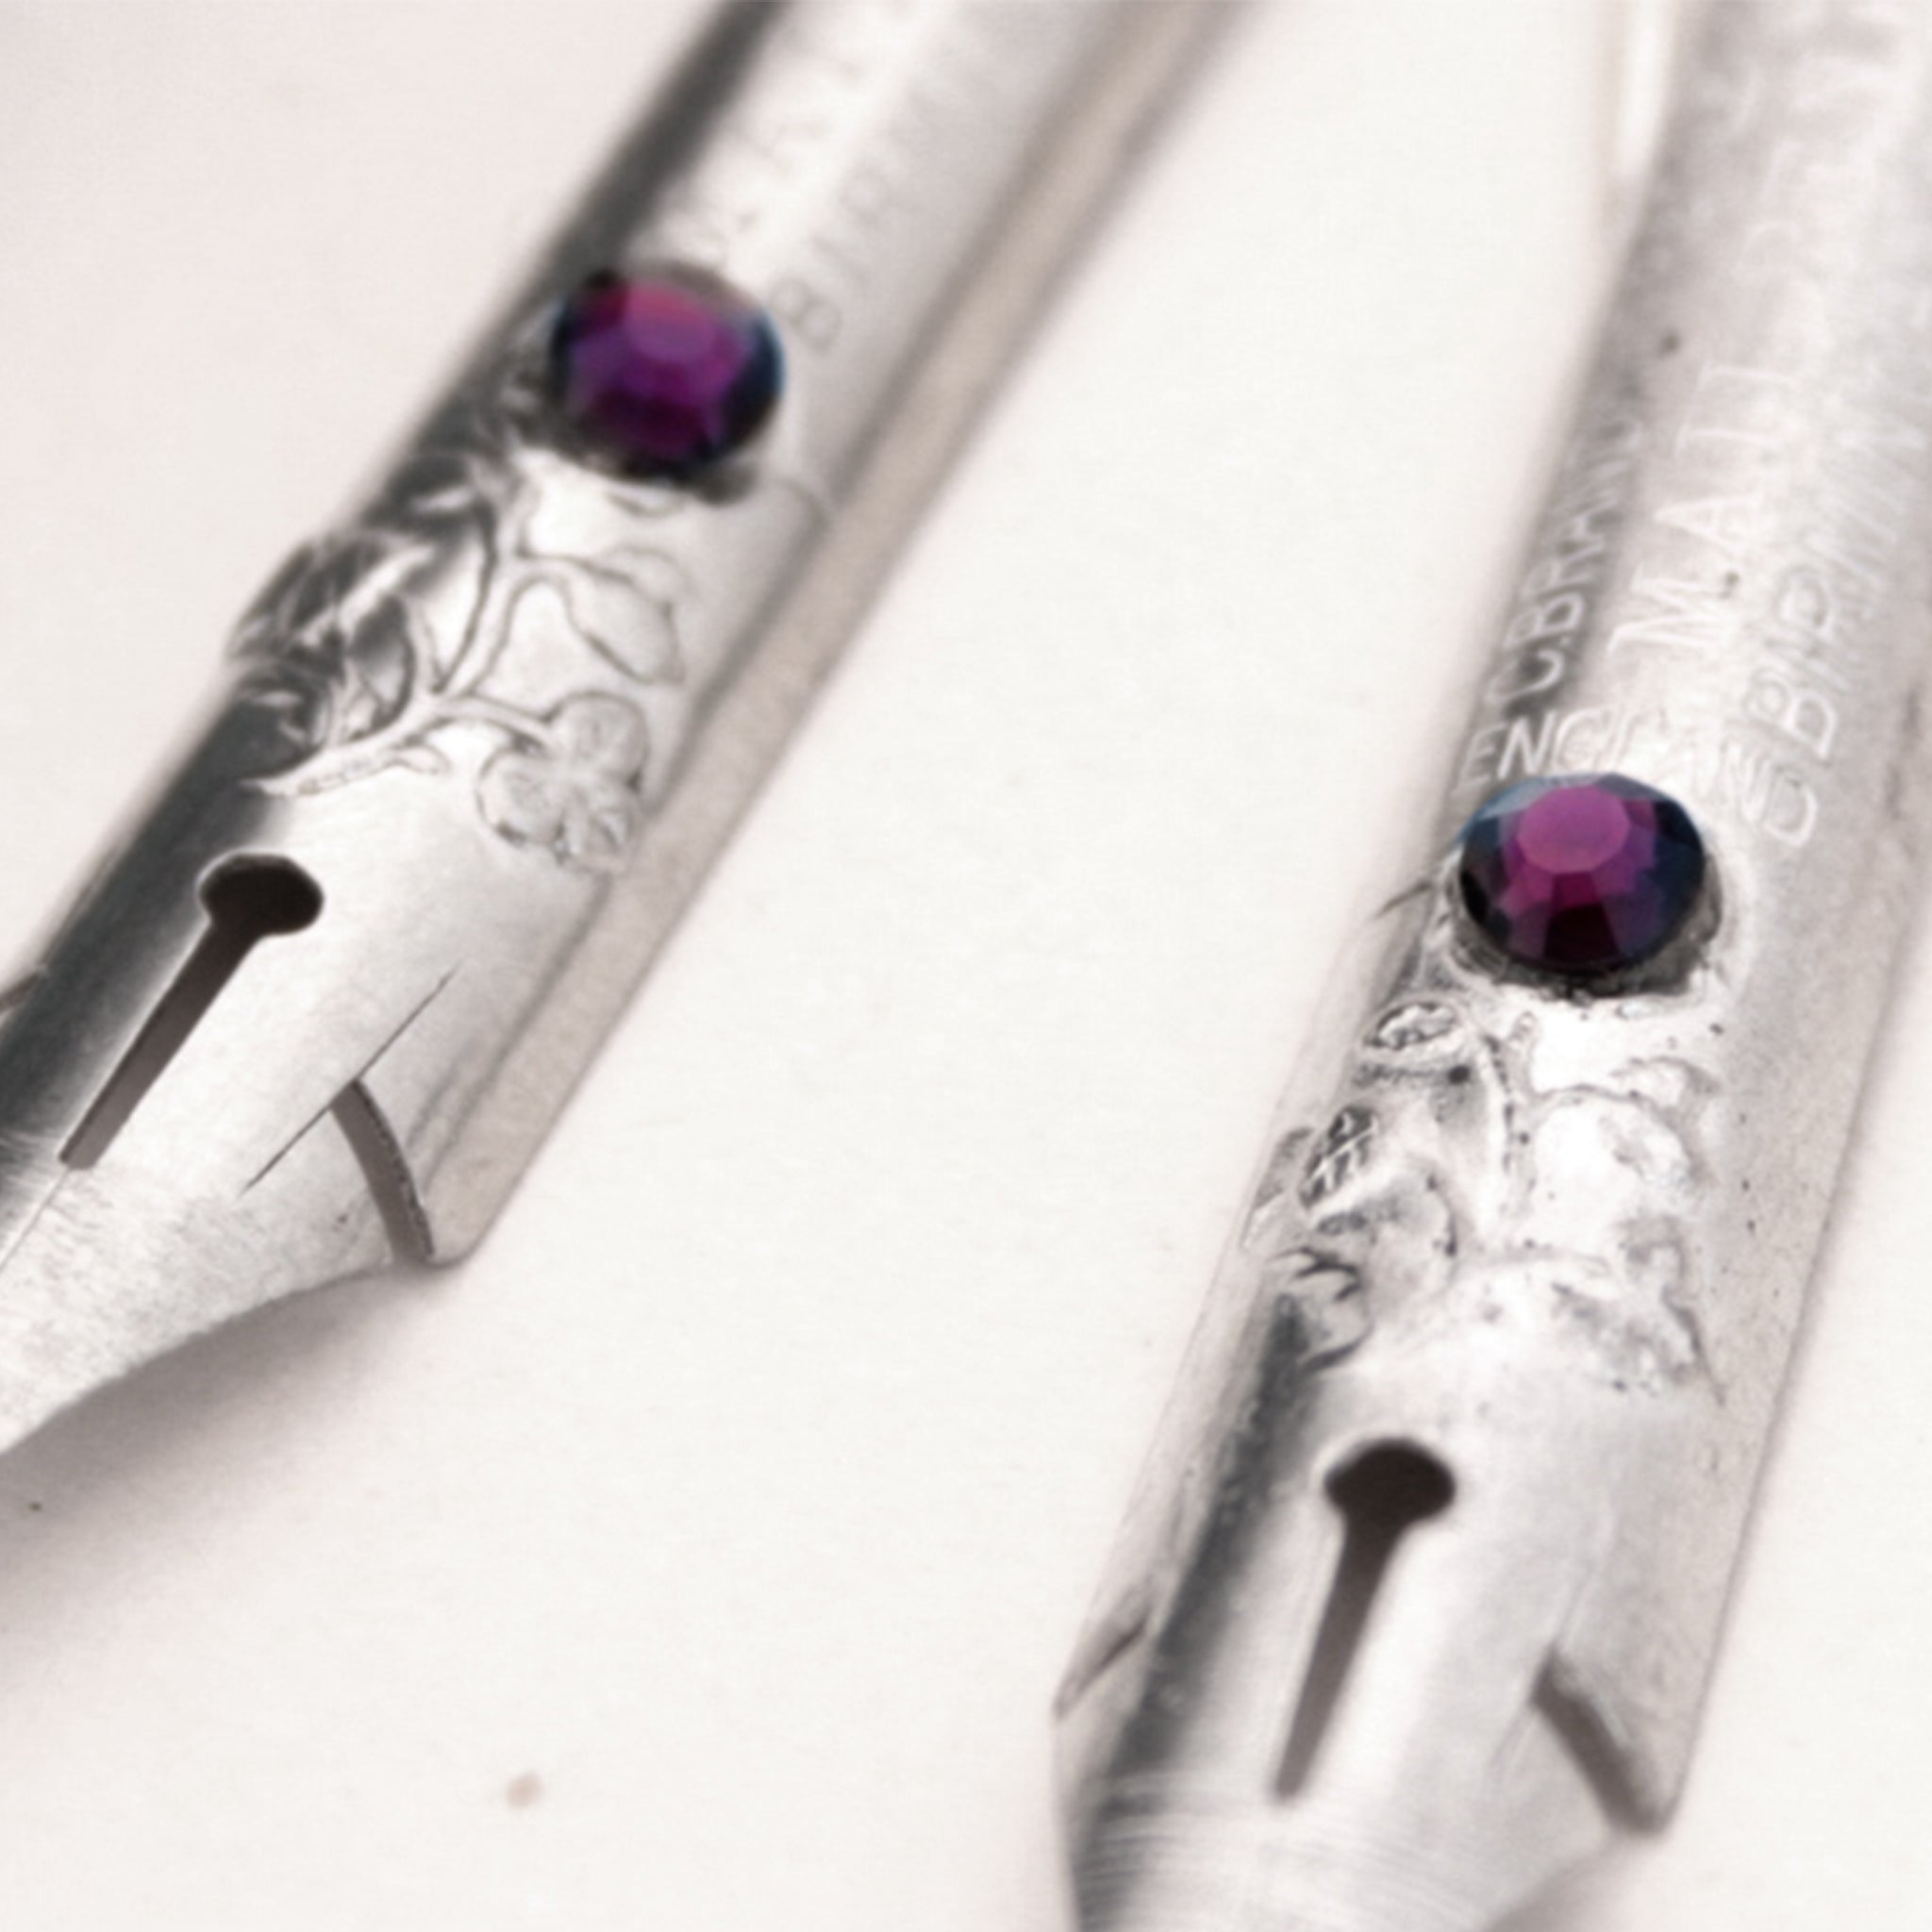 Amethyst Birthstone Earrings made of antique Silver Pen Nibs